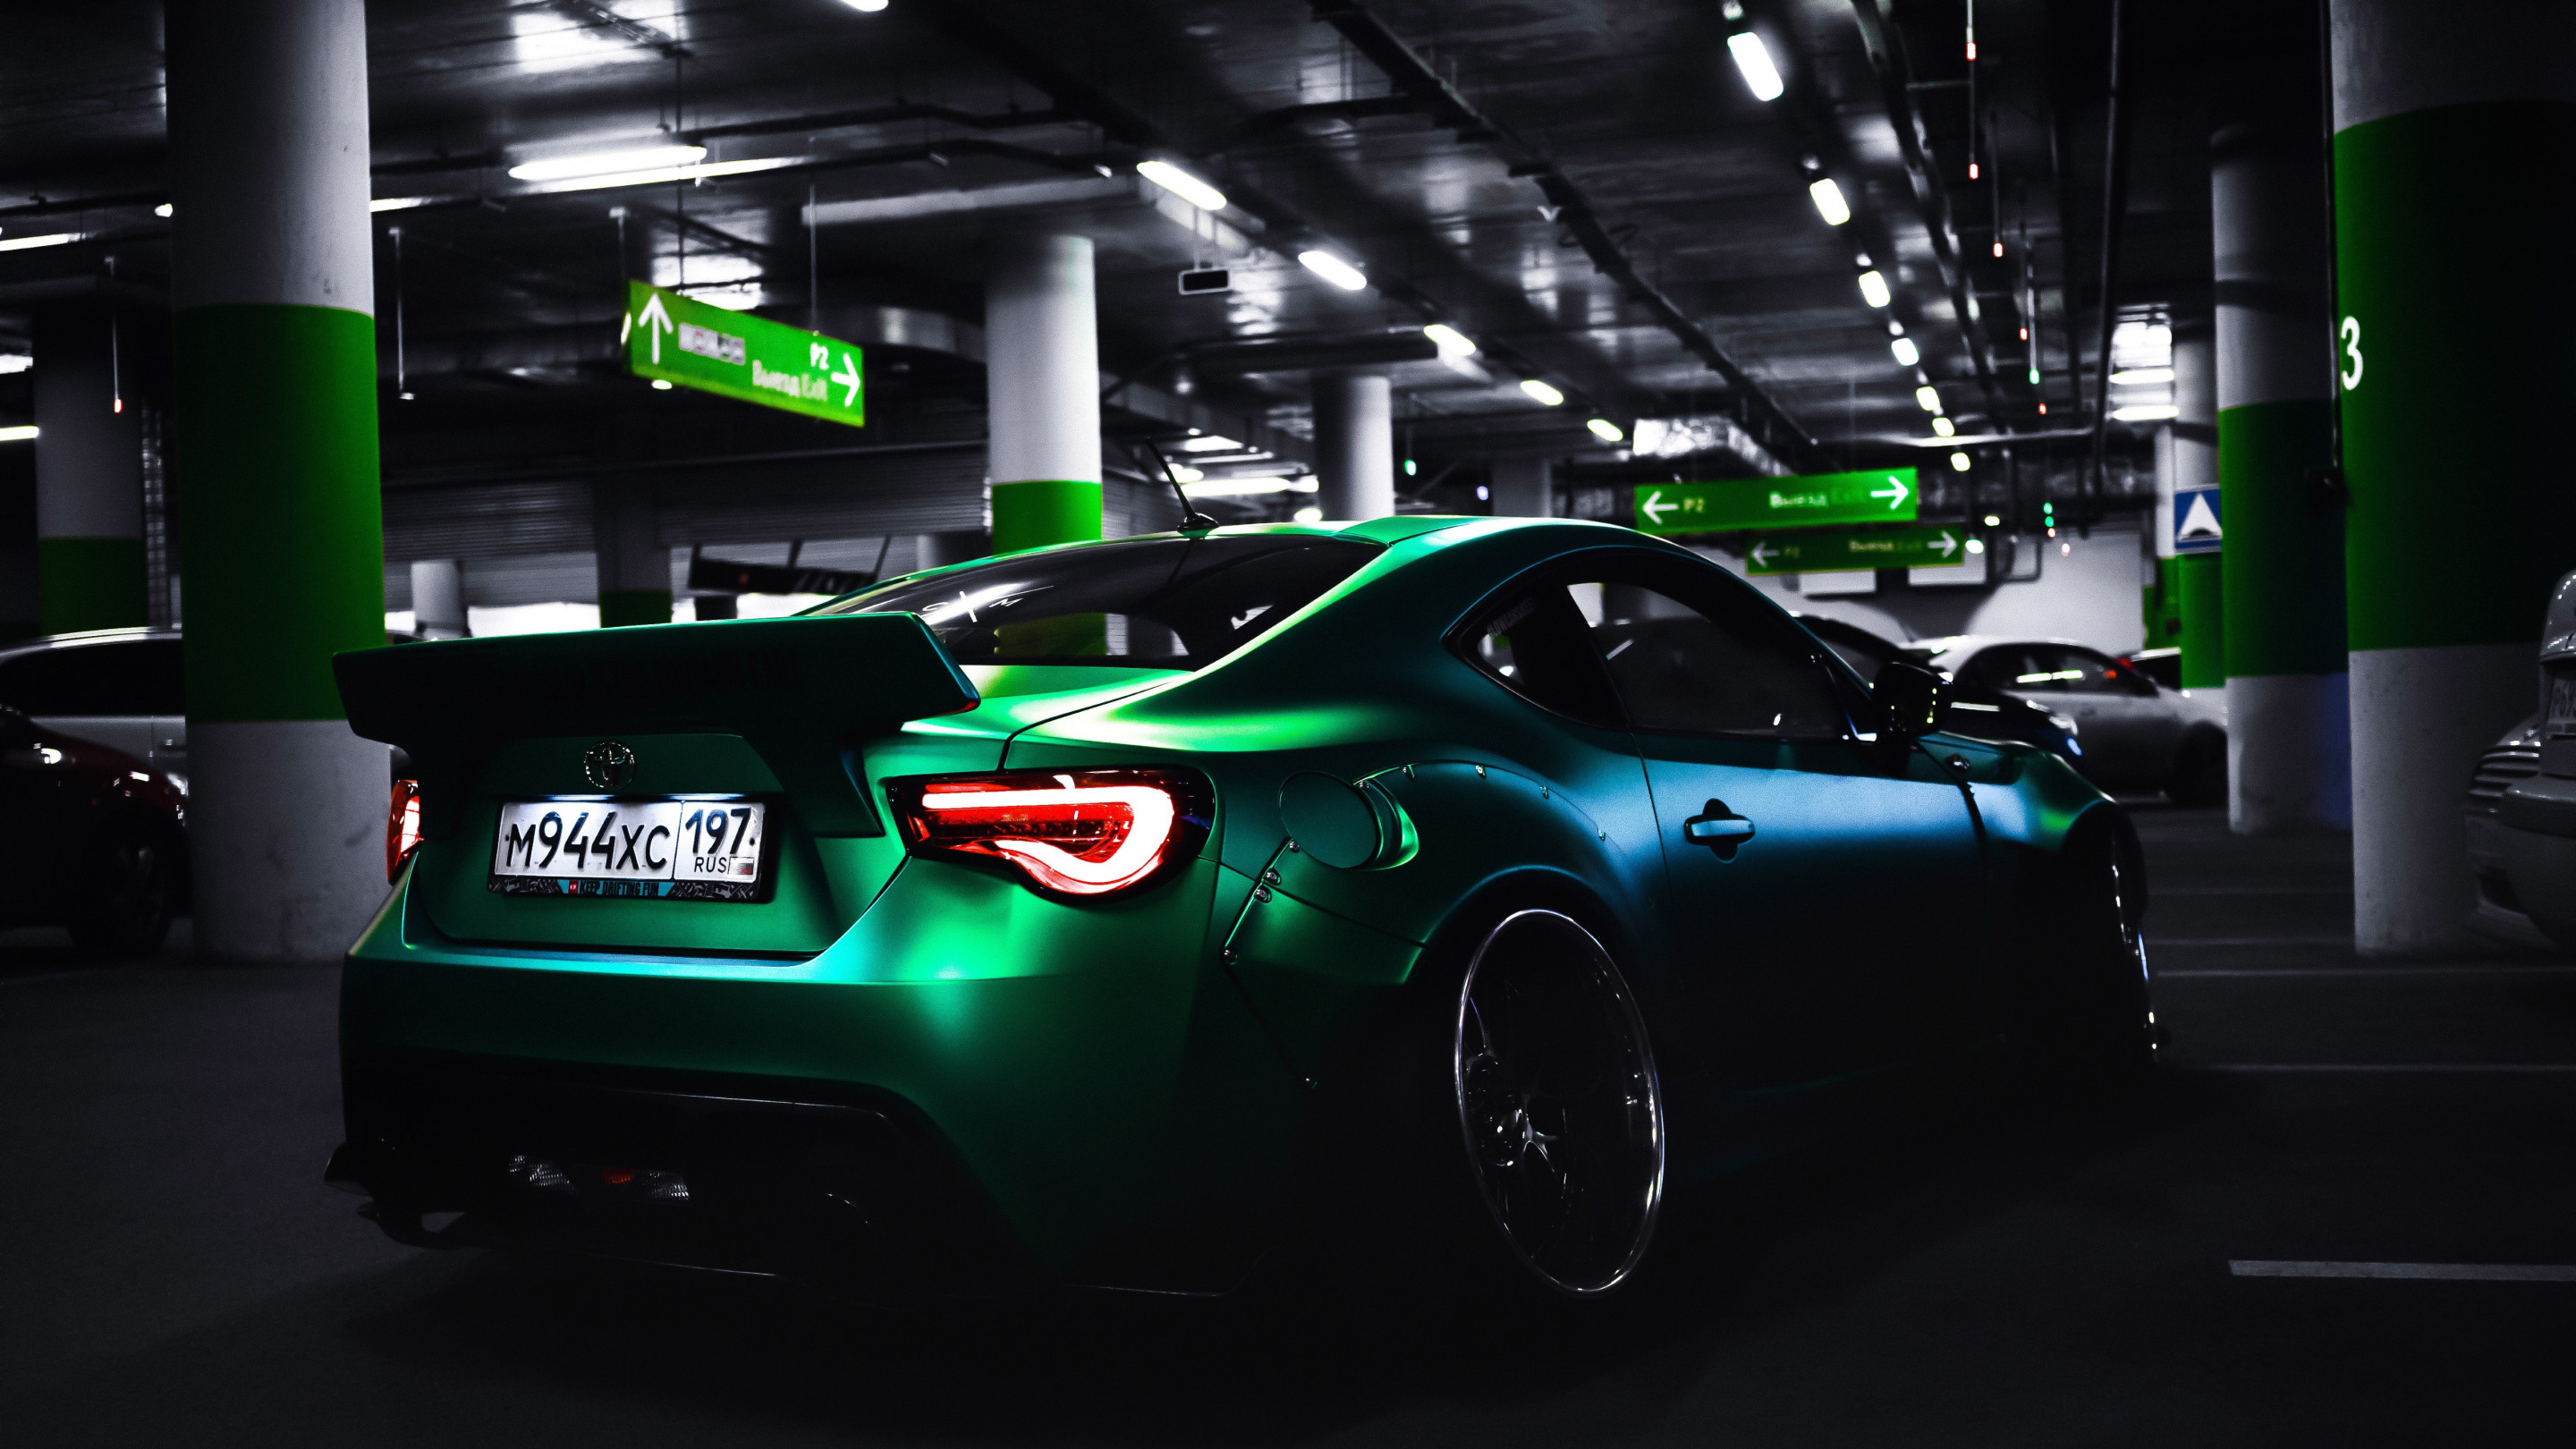 Toyota sports car wallpaper 2880x1620